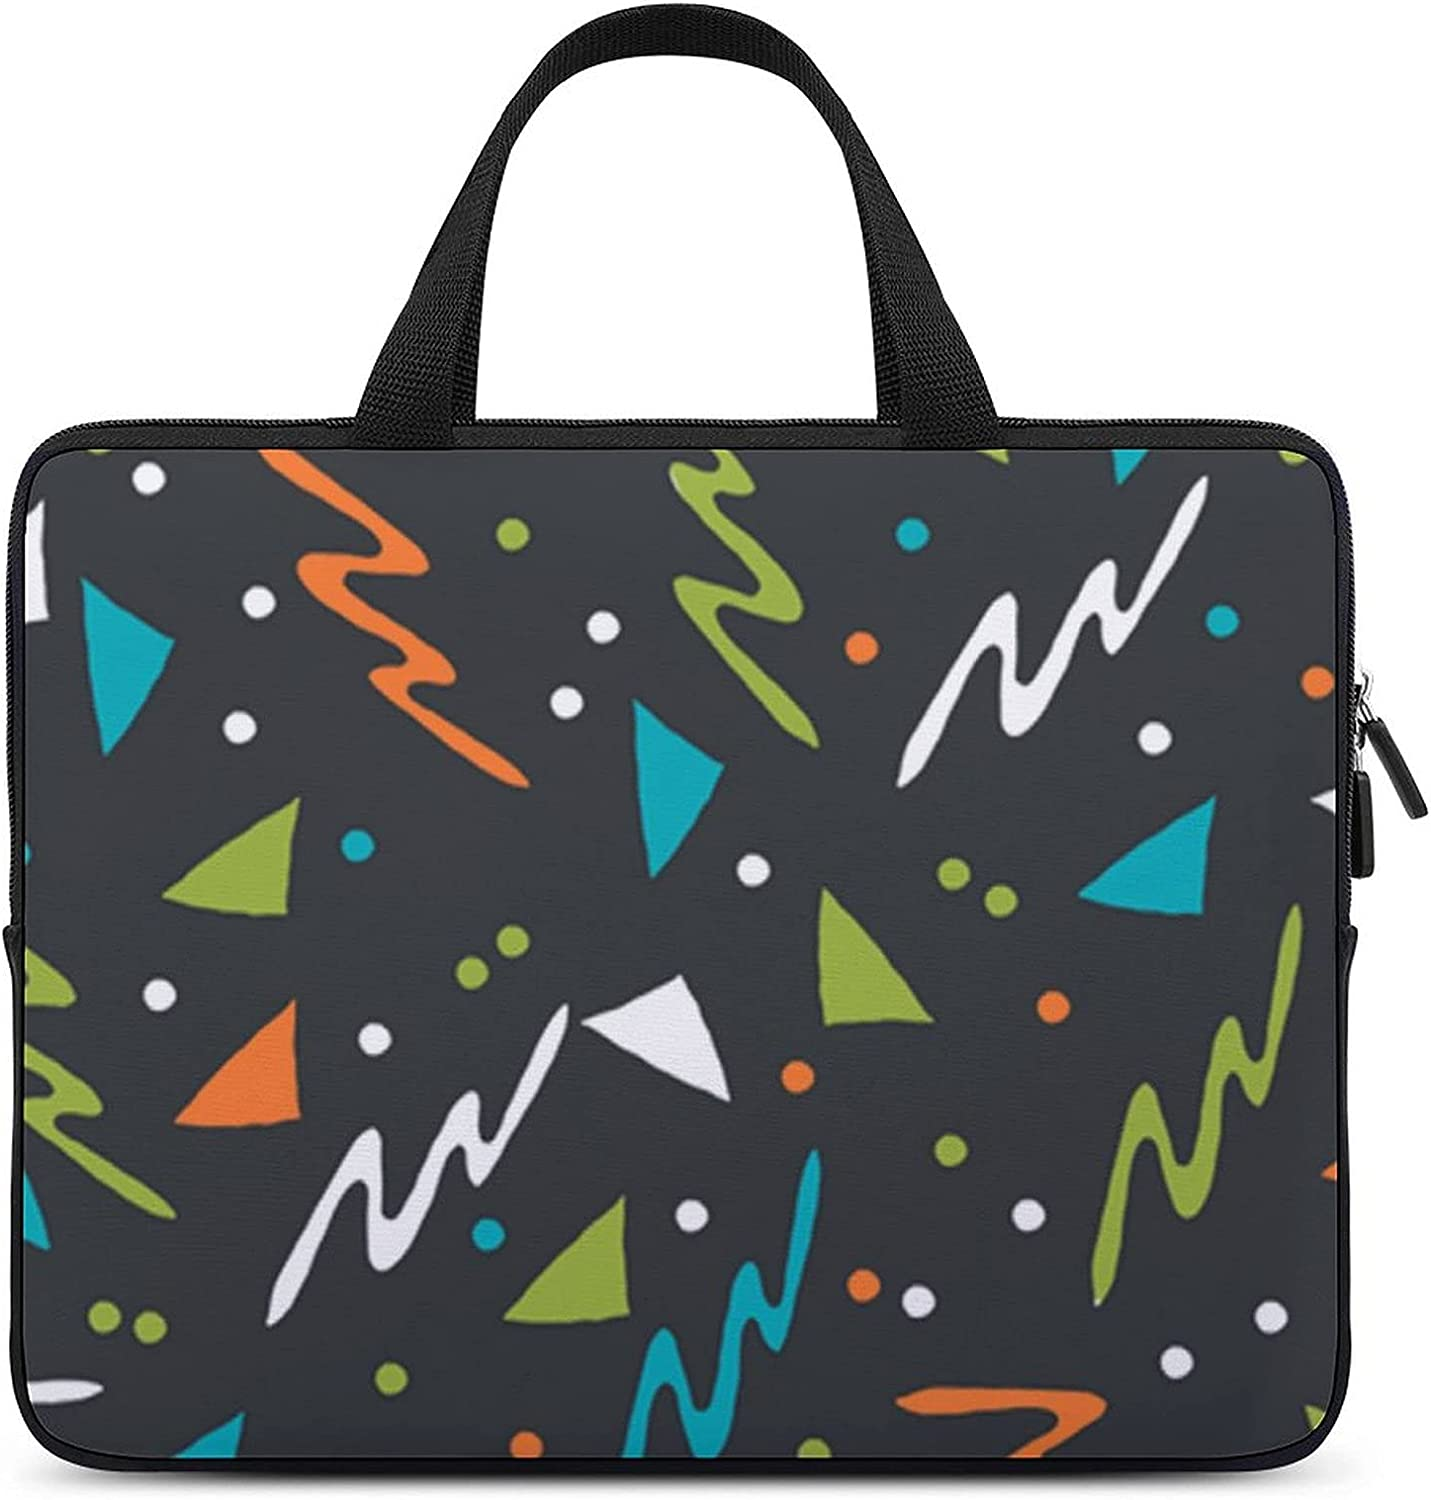 80s Memphis Laptop Tote Bag HandBag Protective Briefcase 15inch Discount mail order Limited time cheap sale